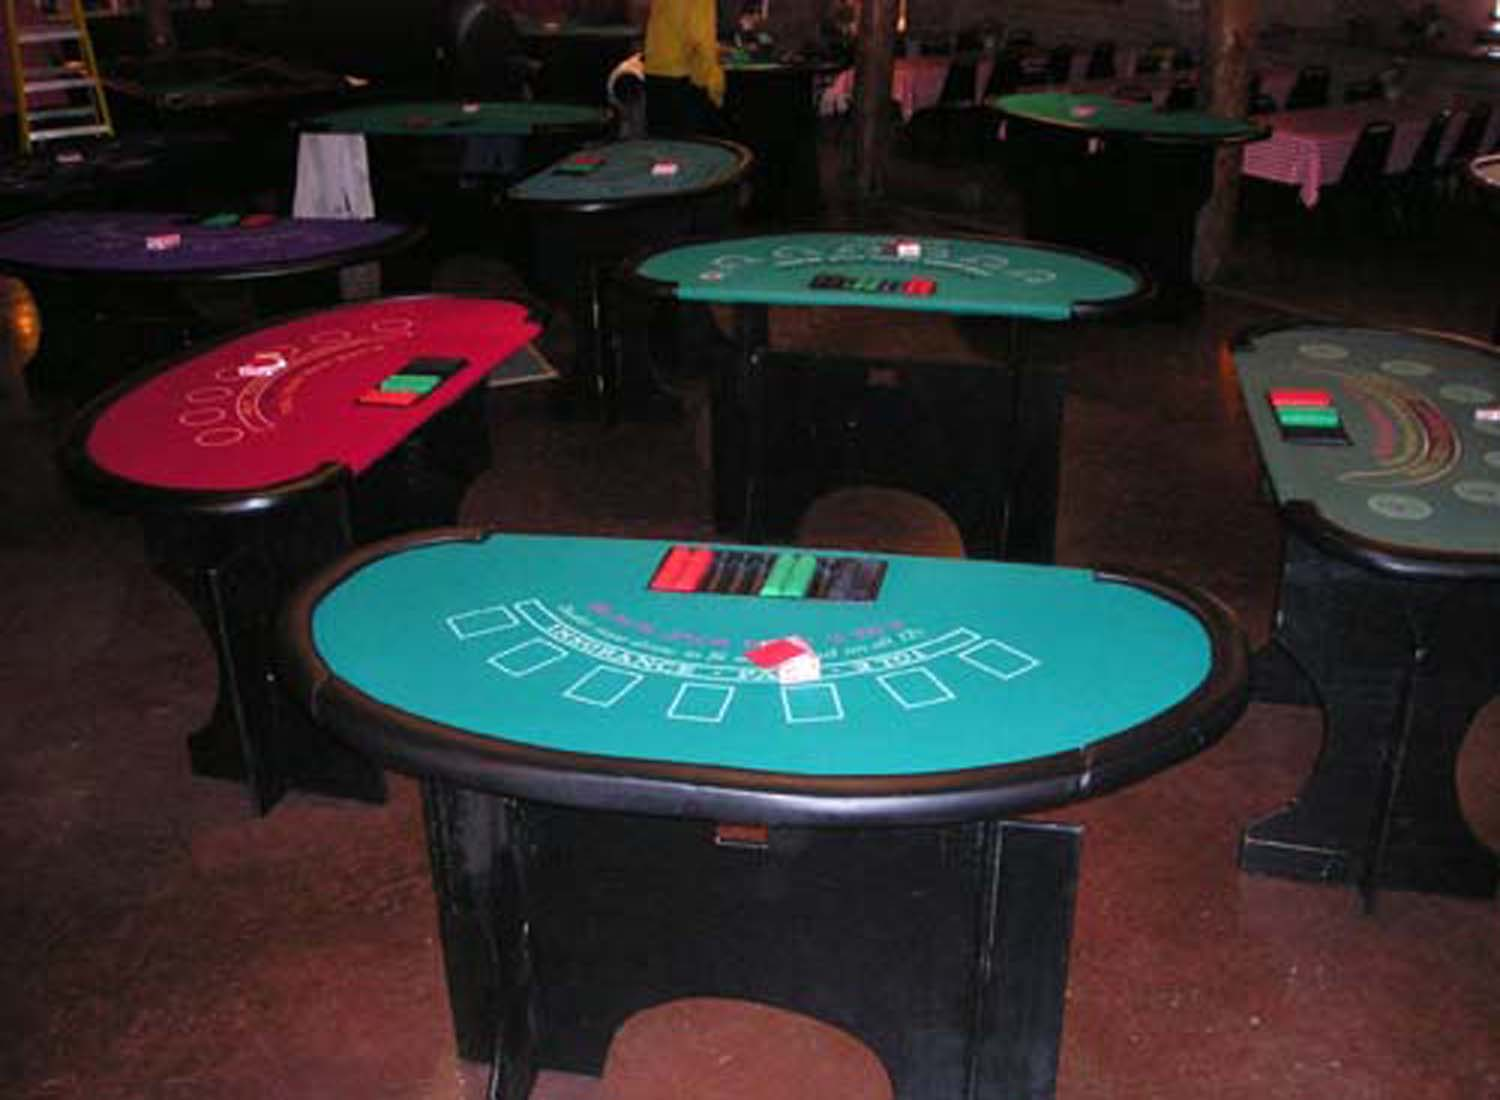 Arizona Casino Knghts: Casino Night Blackjack Tables, Casino Party